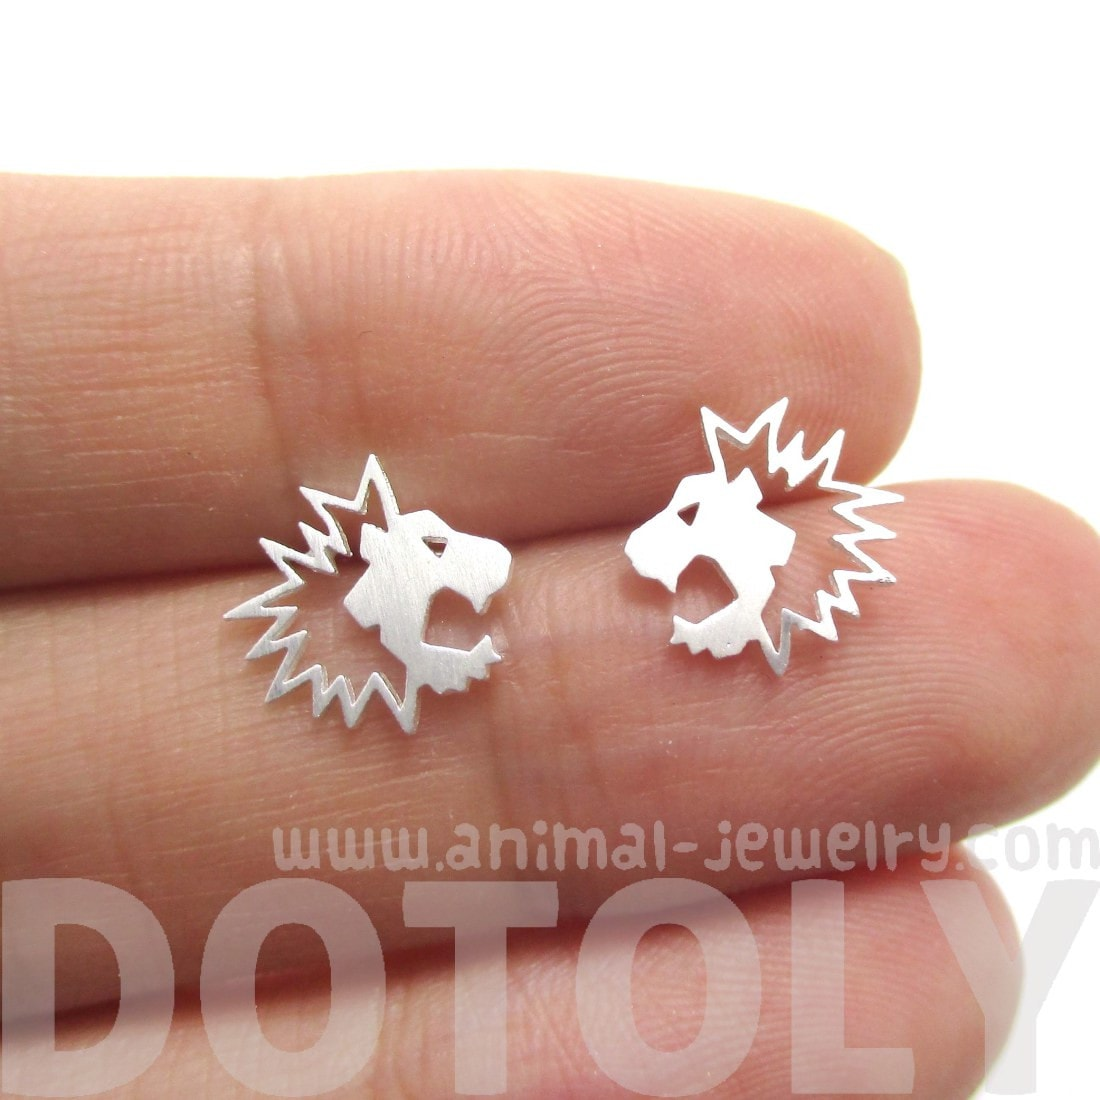 Lion Face Shaped Stud Earrings in Silver | Animal Jewelry